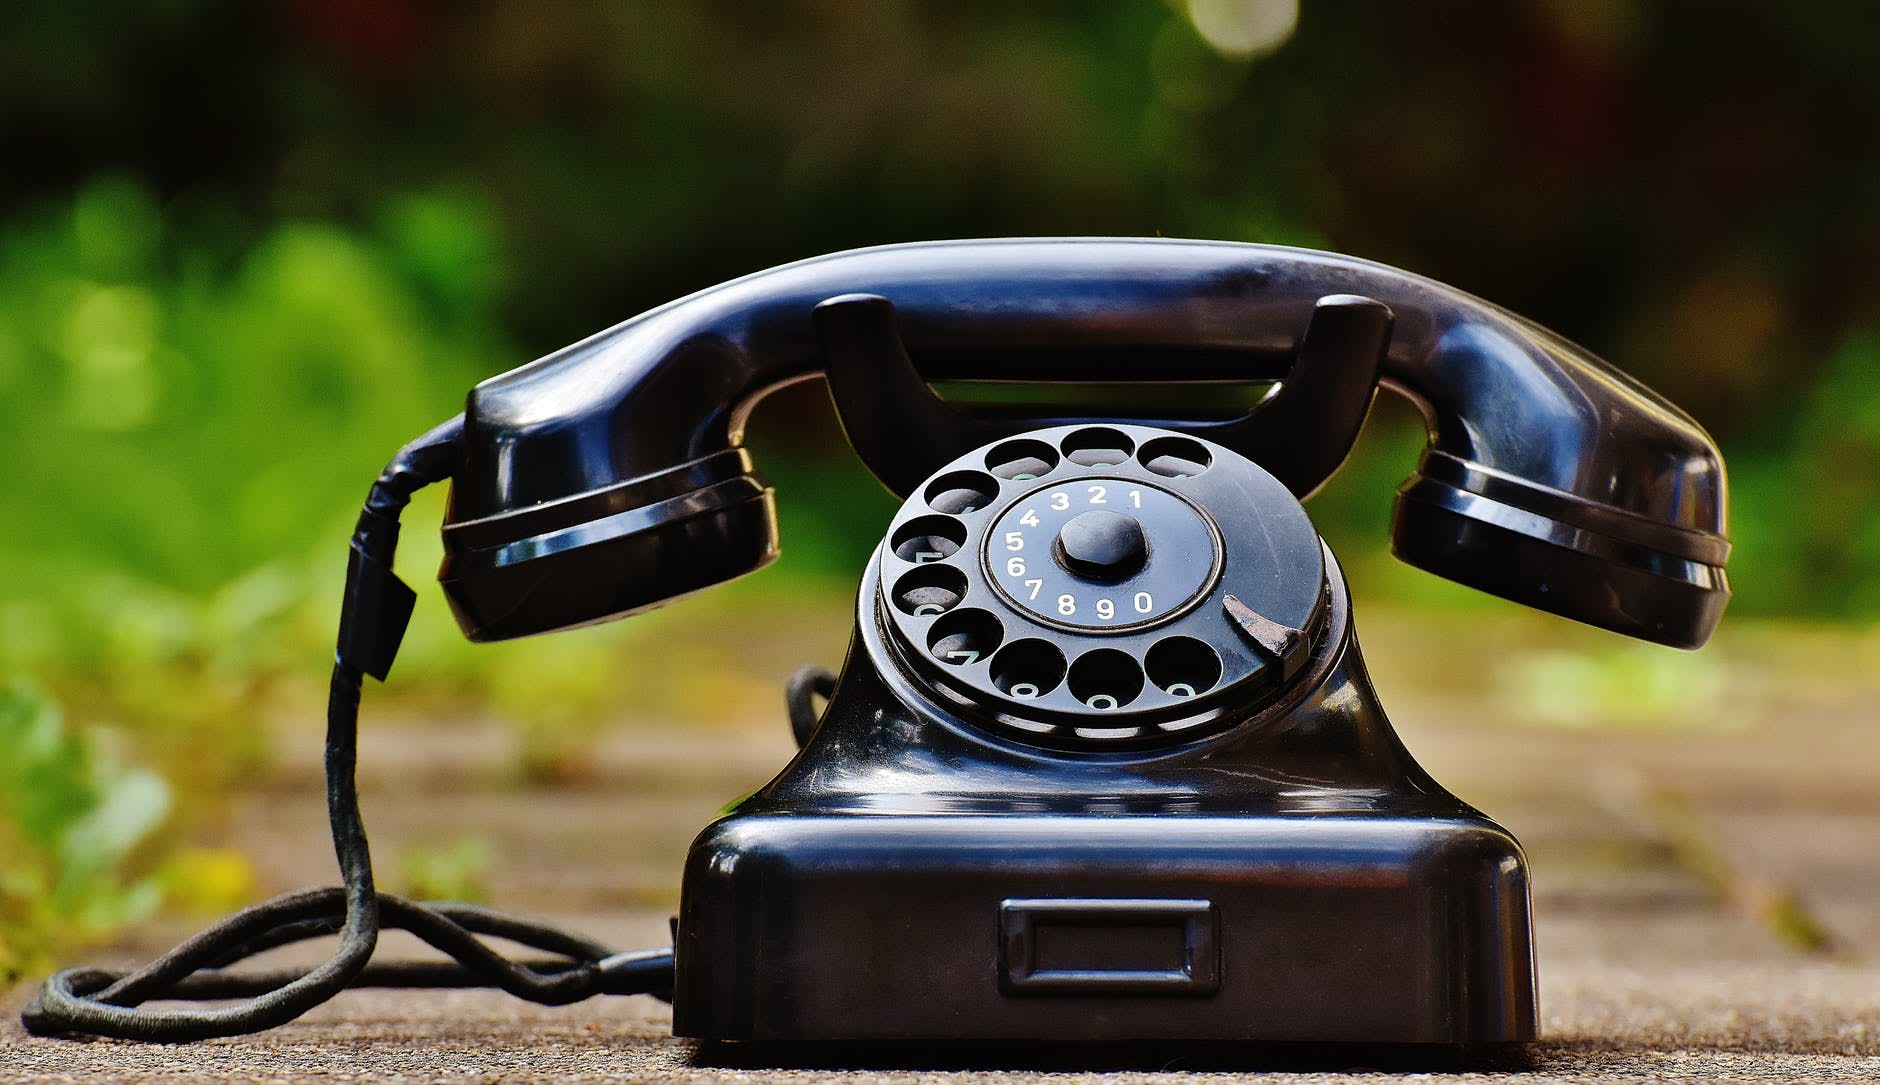 Cold calling rules called into question